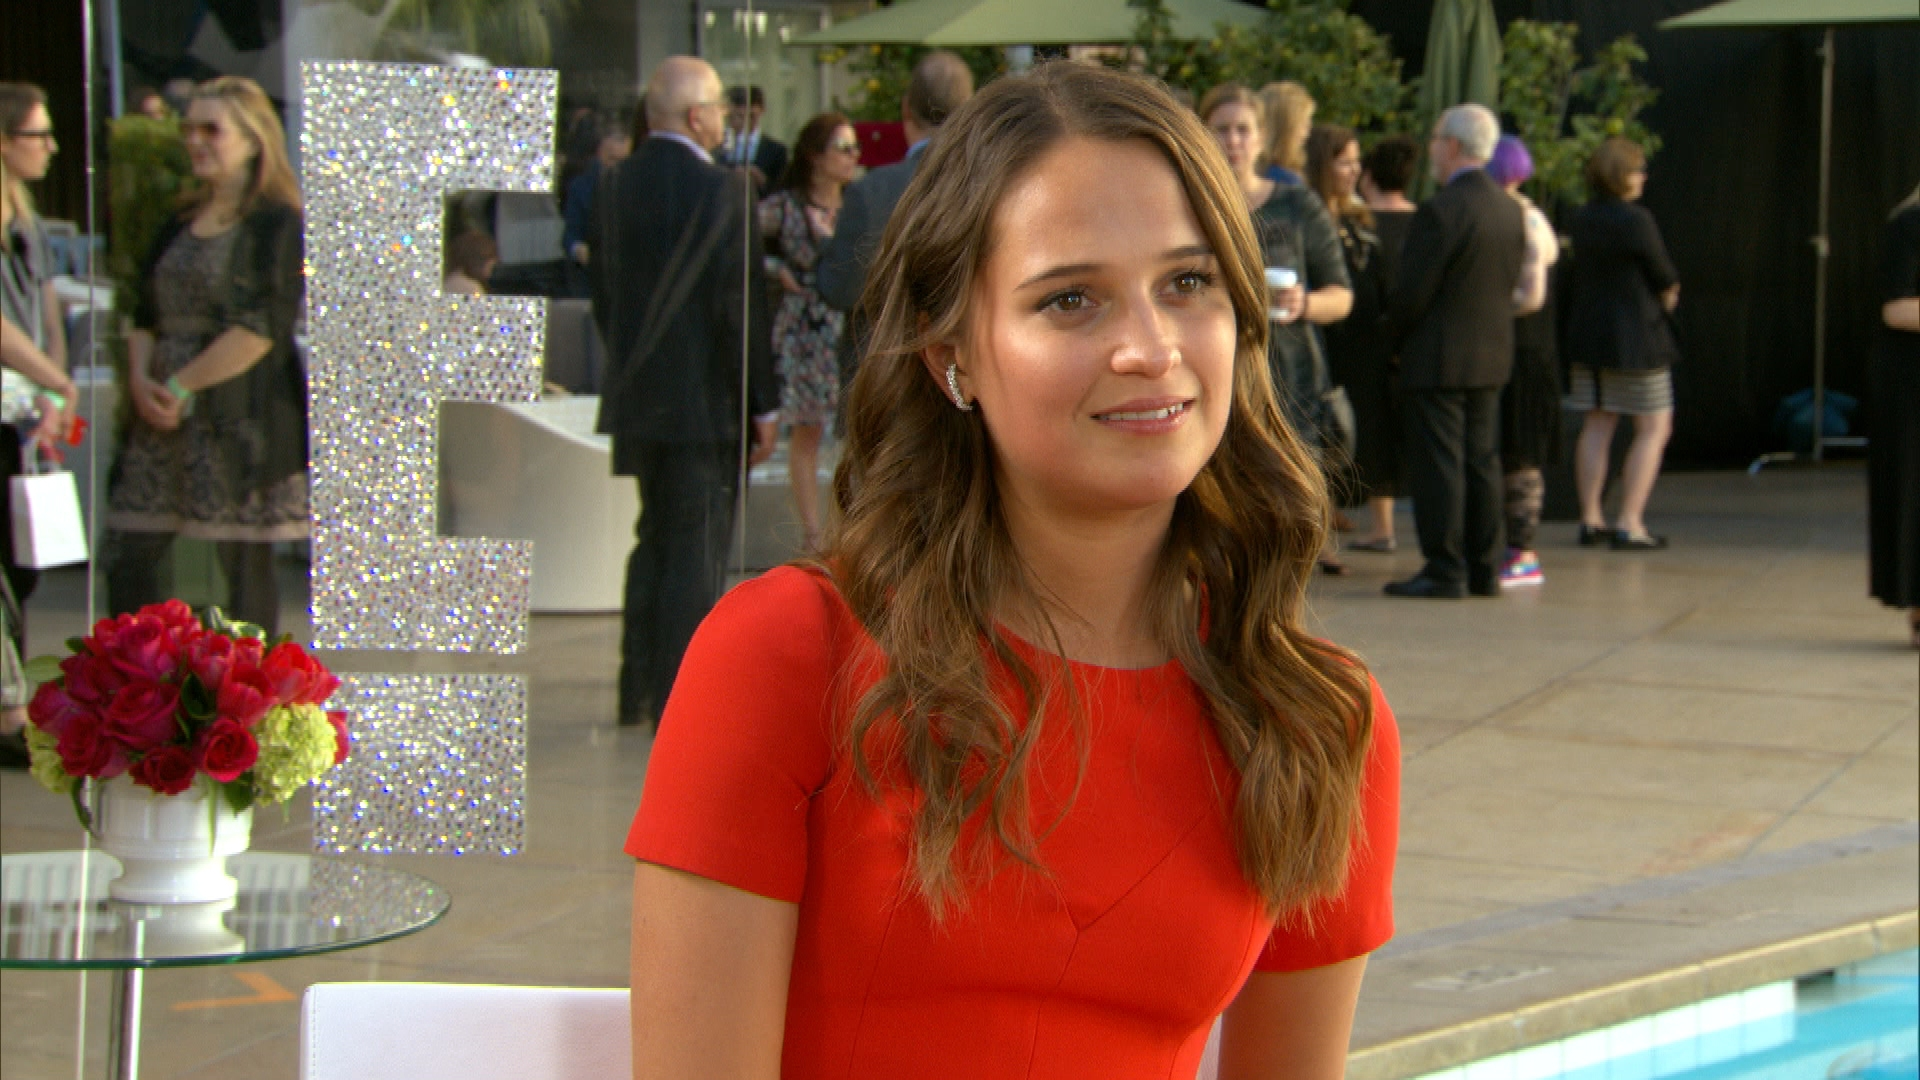 Alicia Vikander Reveals Her Date to 2016 Oscars!